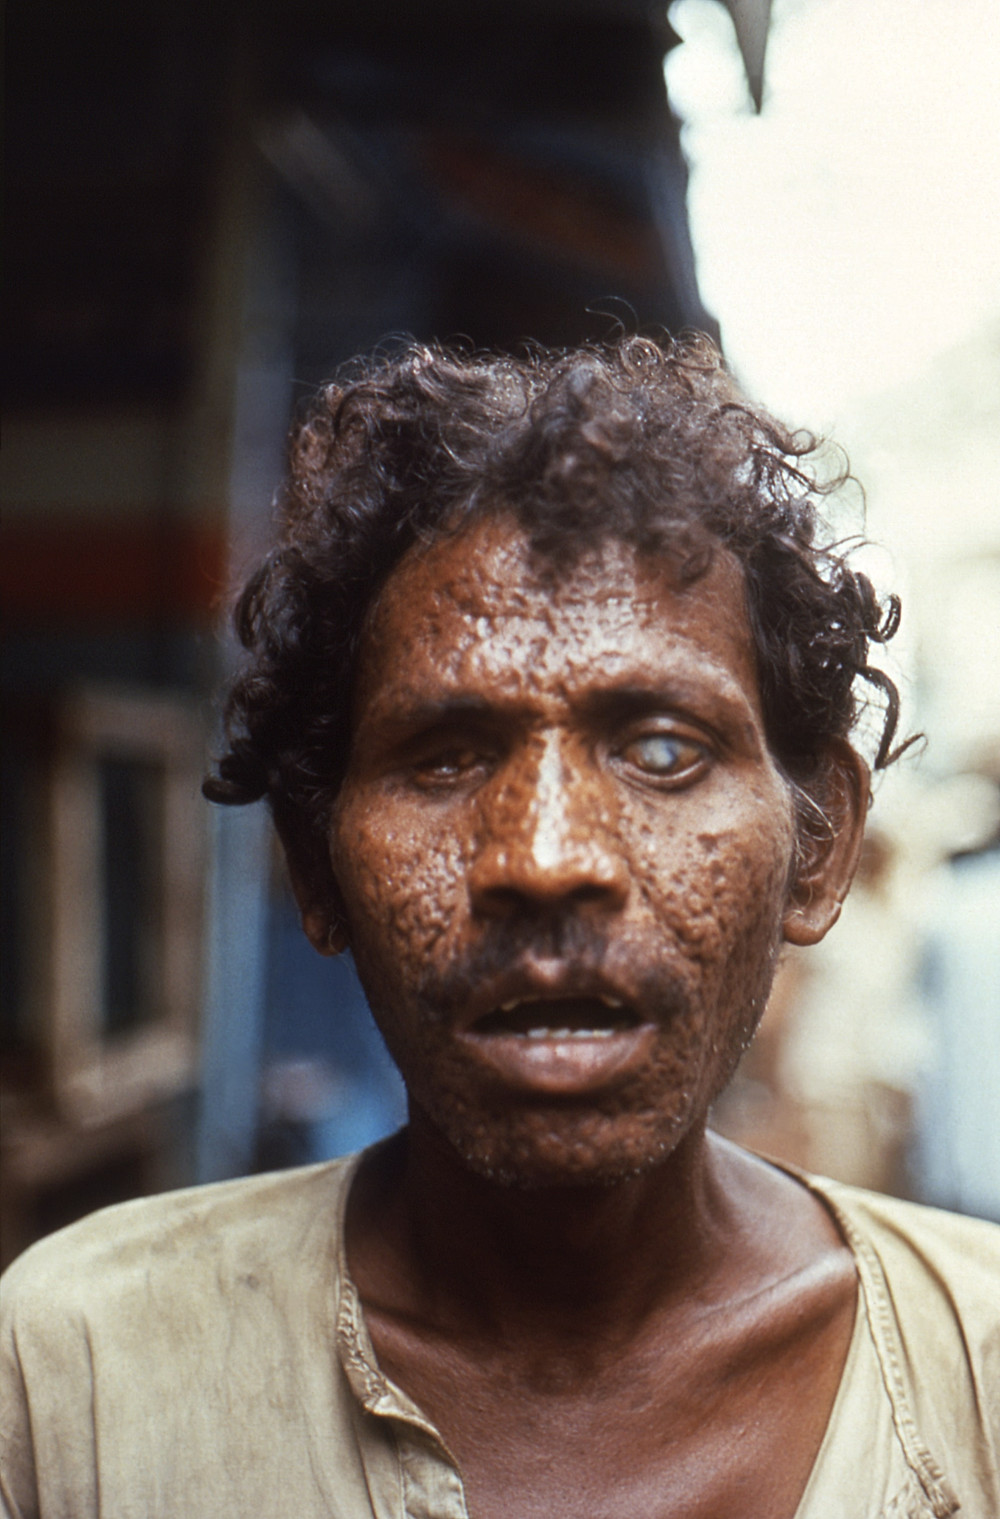 A man with facial scarring and blindness due to smallpox